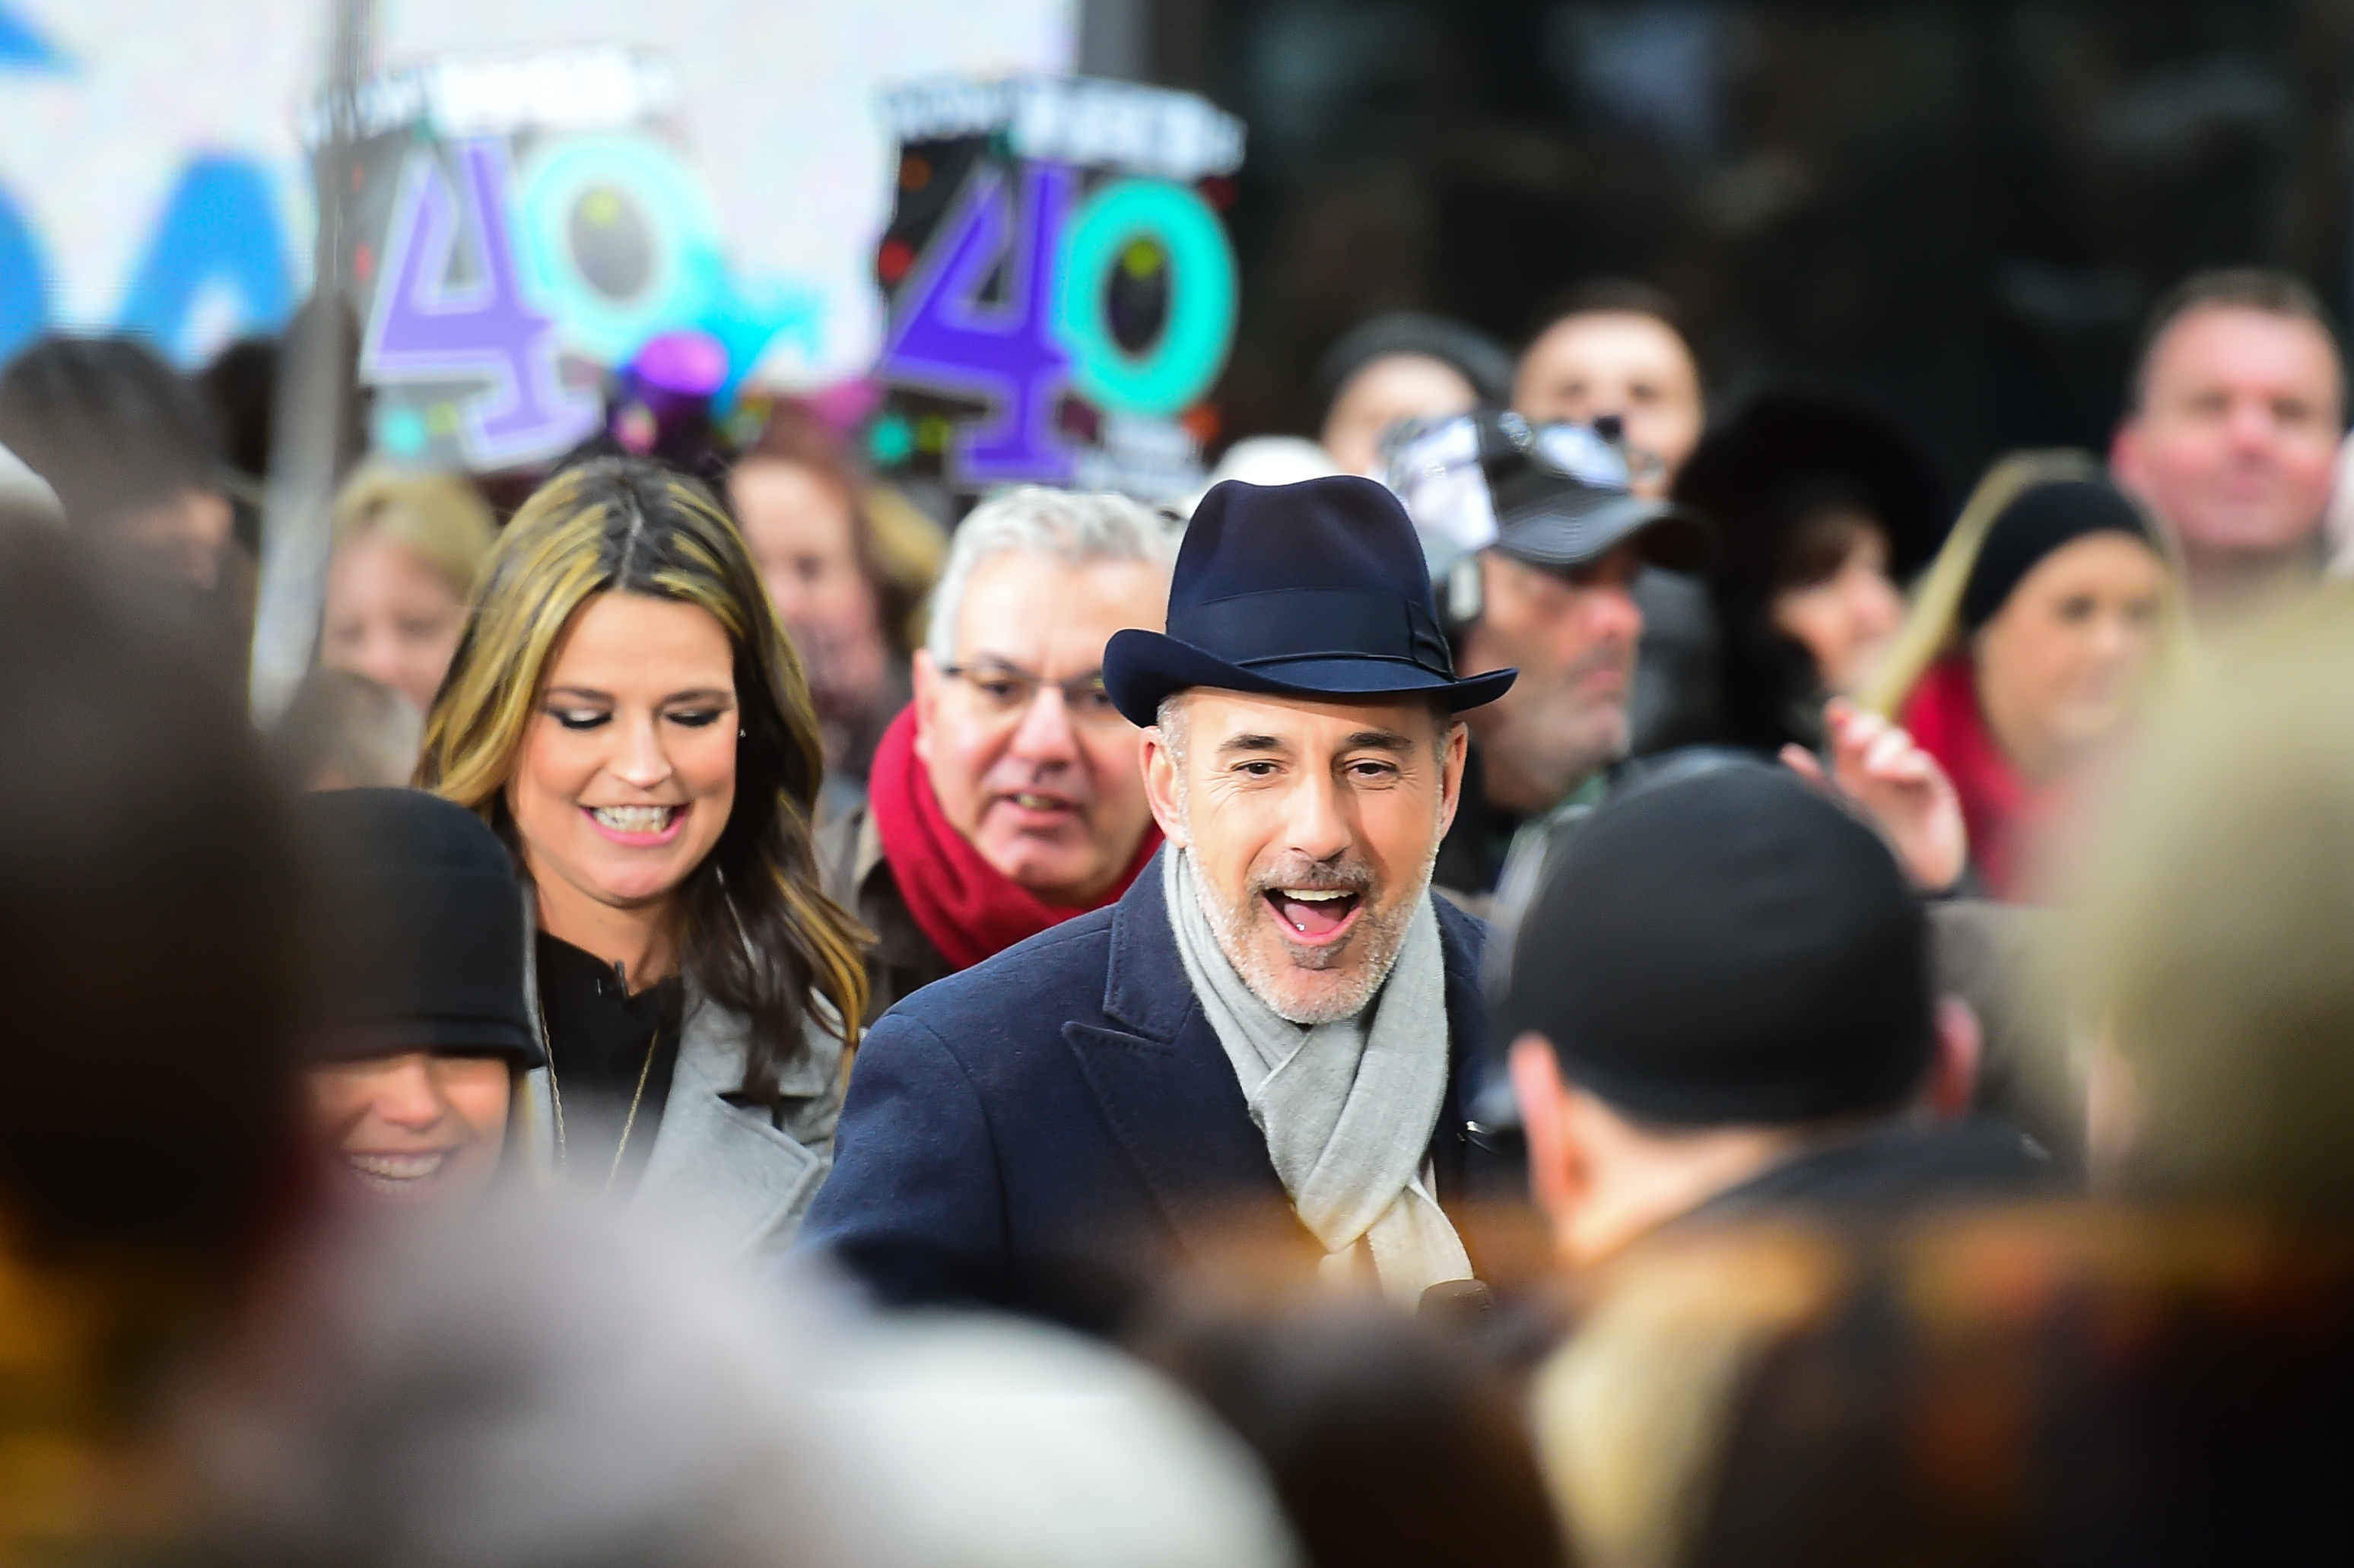 Matt Lauer smiling in a large crowd in New York City